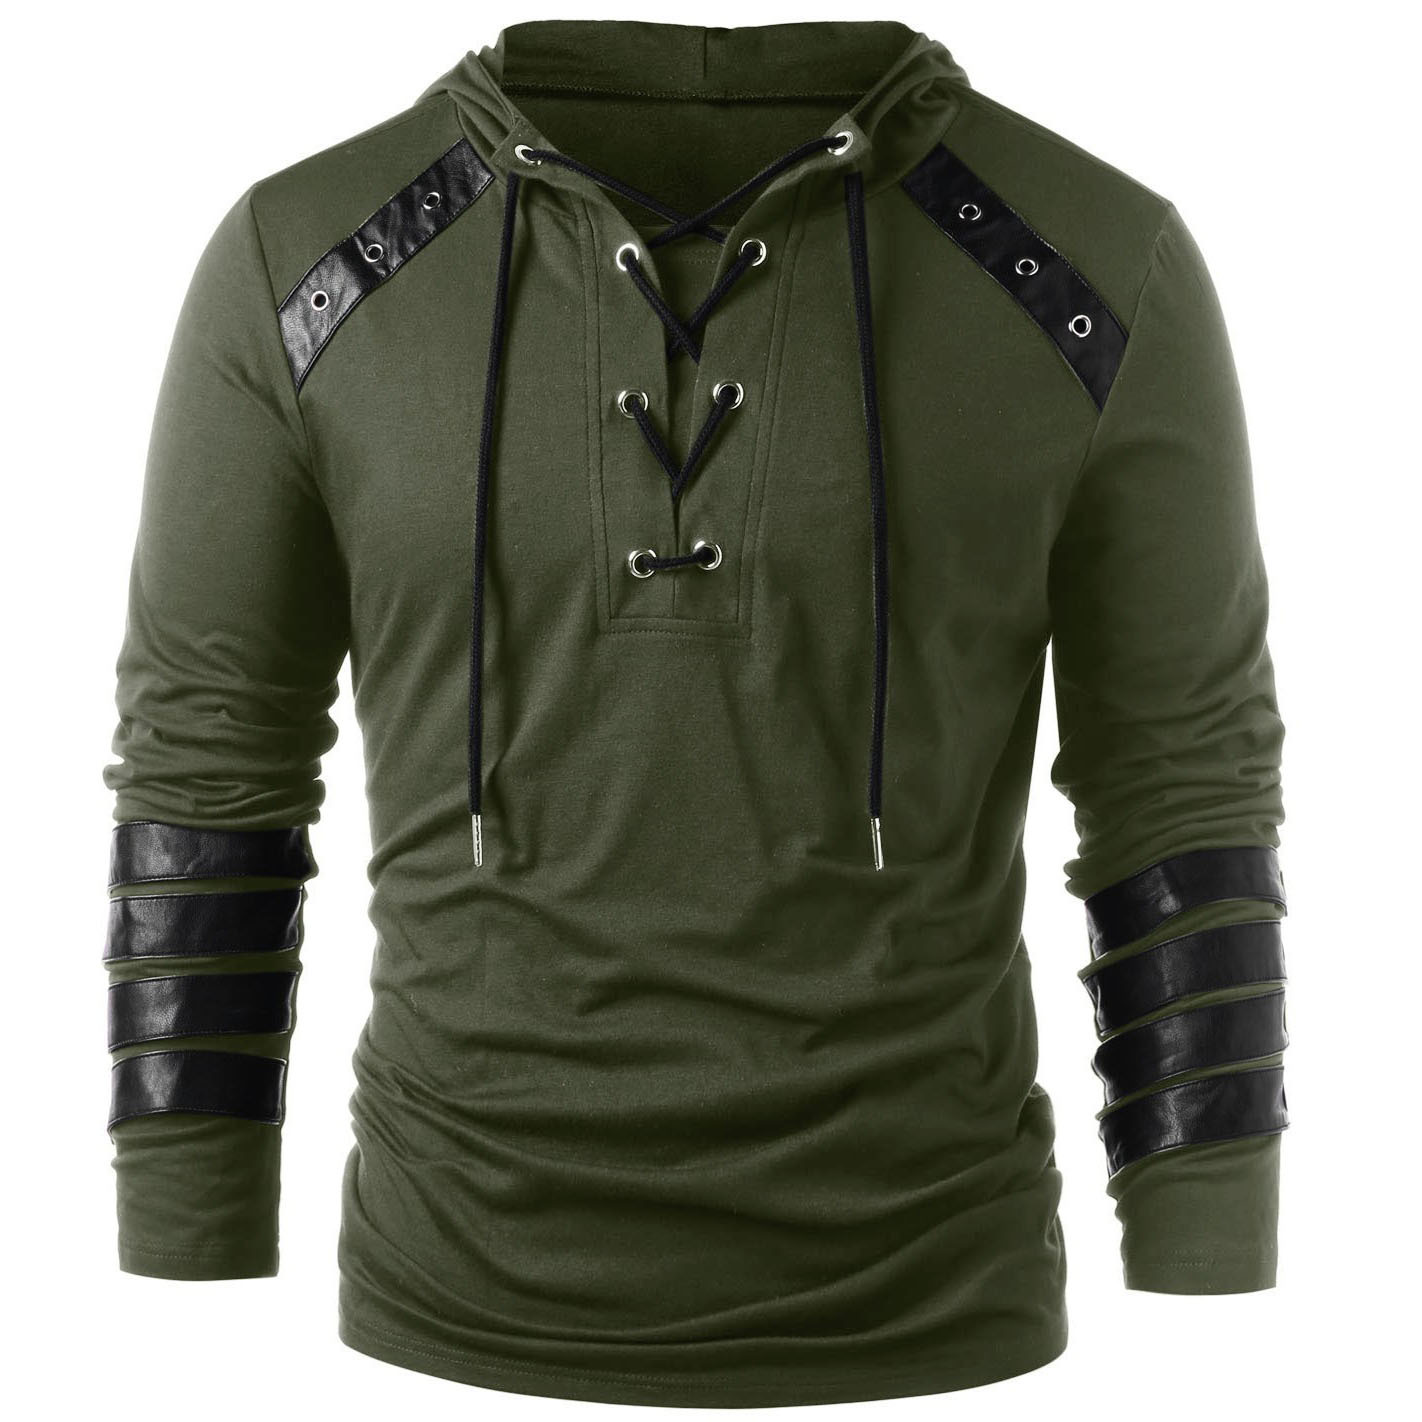 2019 Men's Hoodie Leather Straps Long-sleeved Shirt Slim Lace Hooded Pullover Top